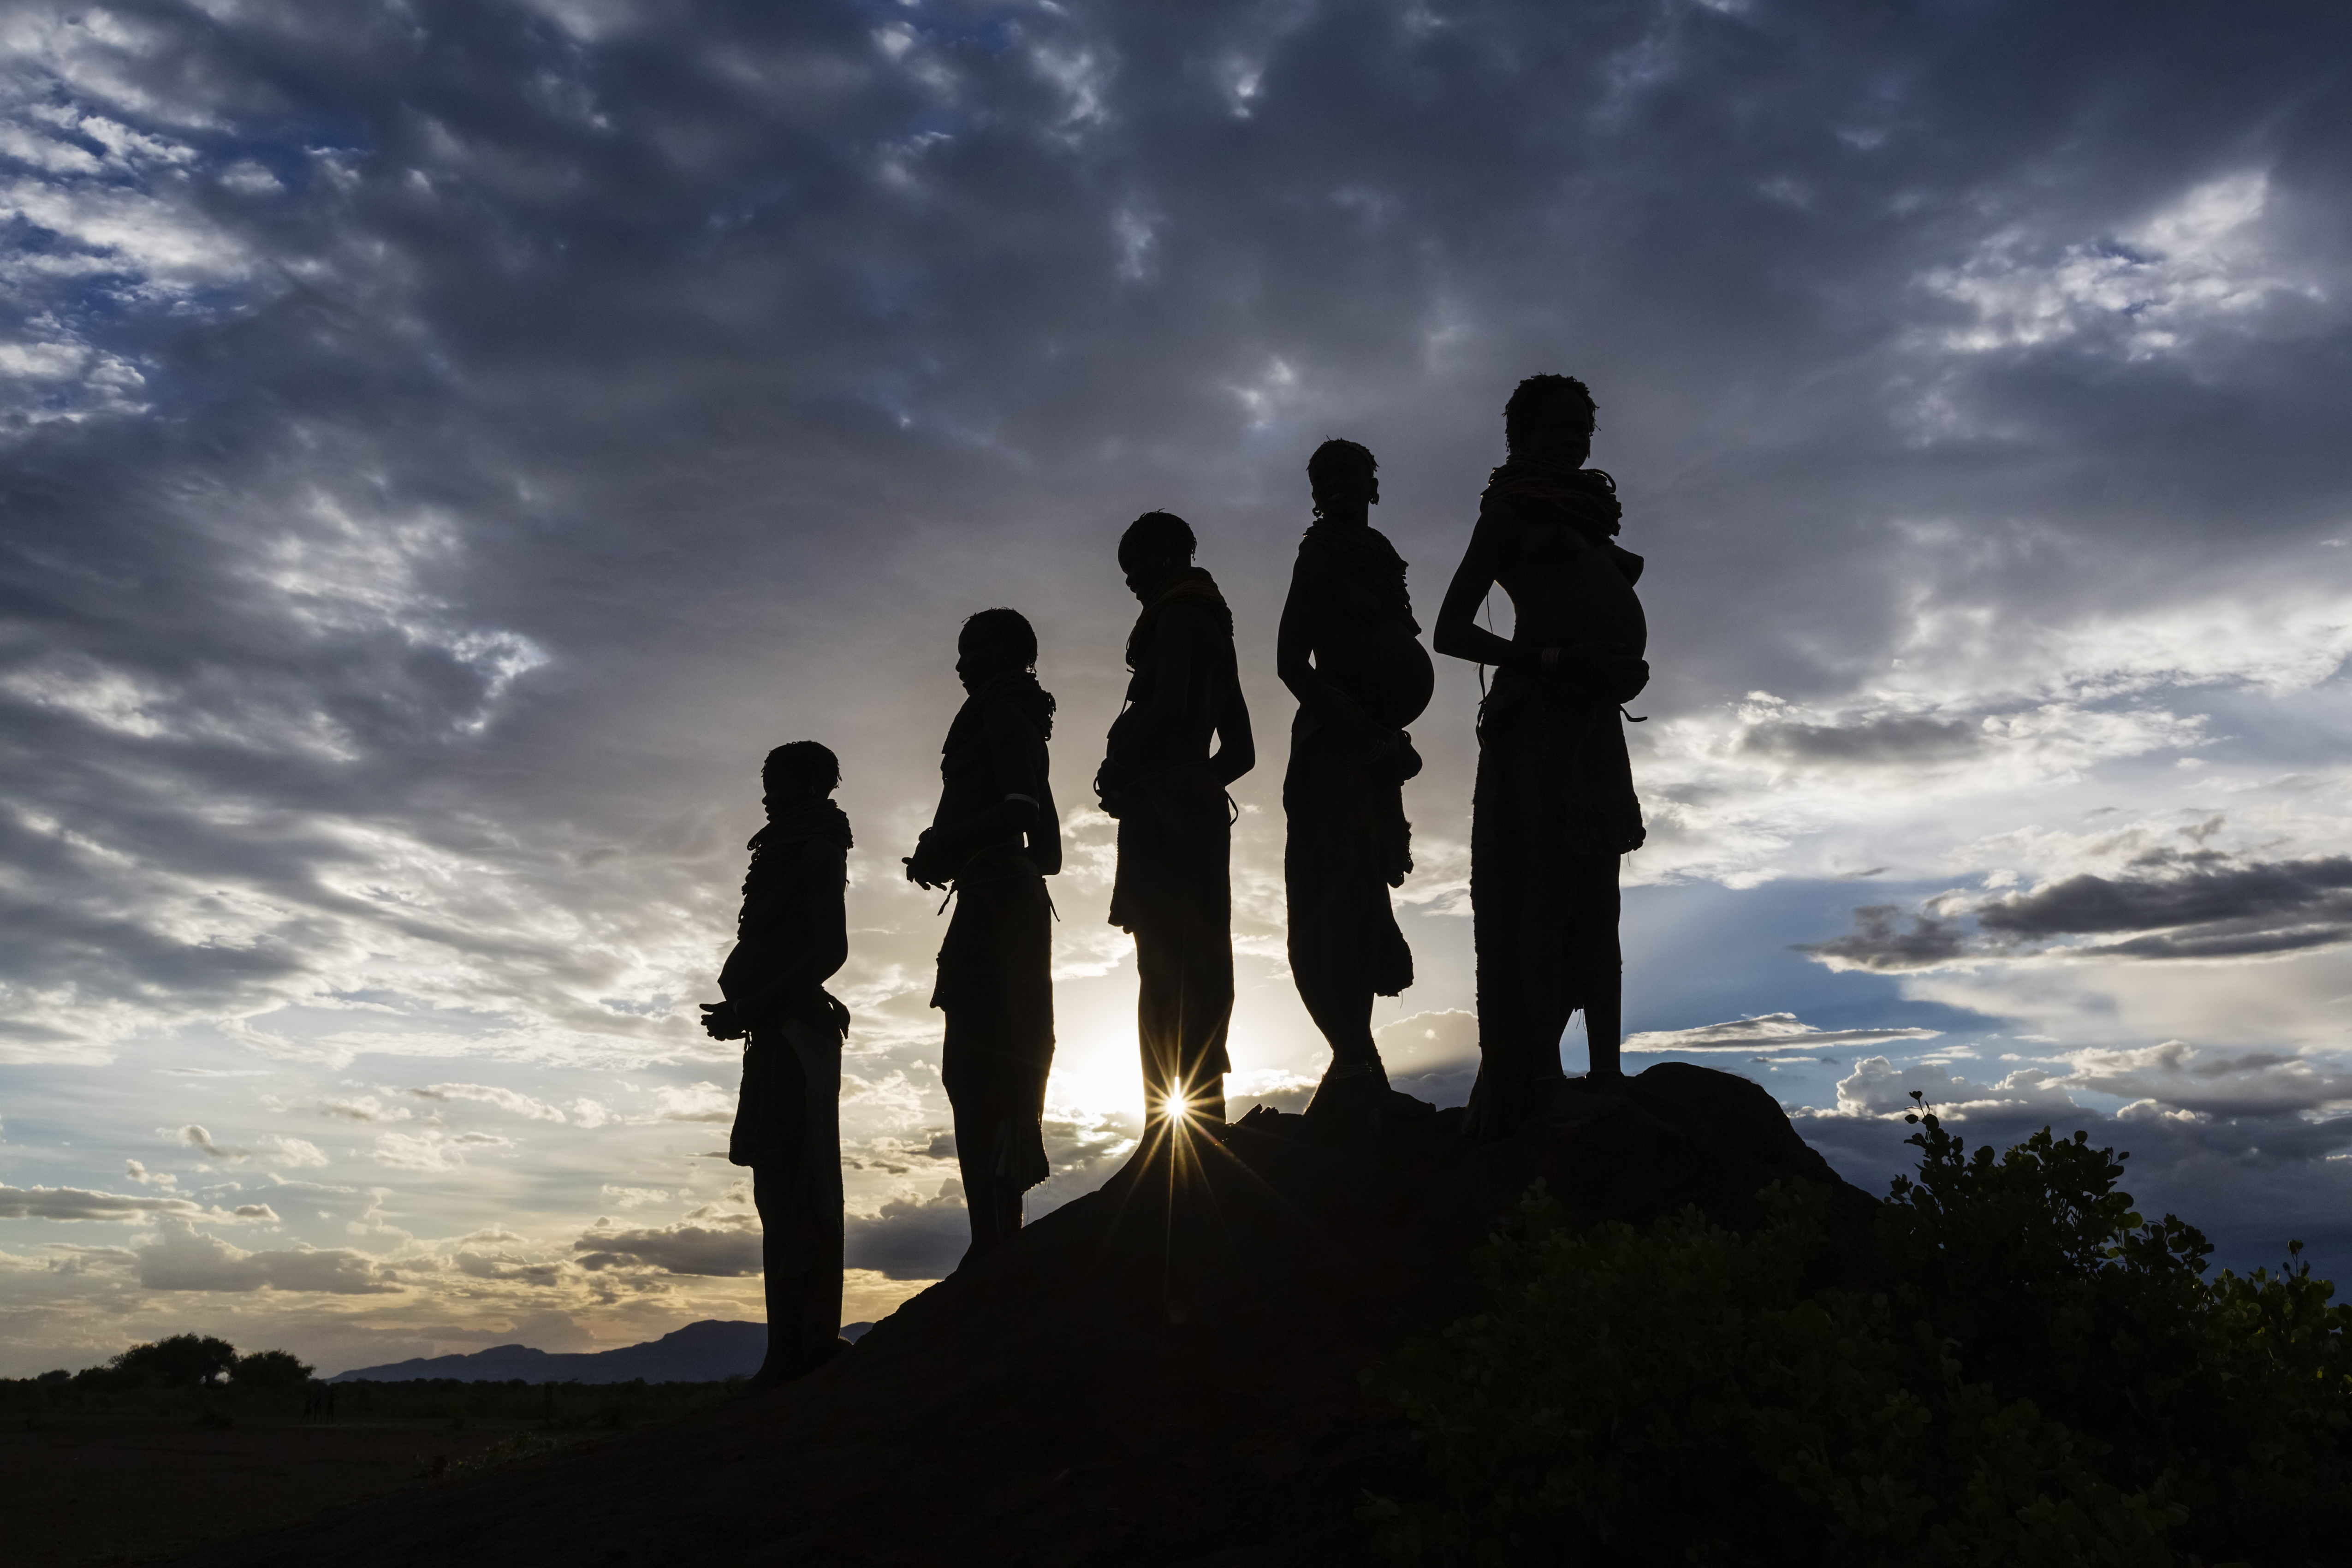 Silhouettes of pregnant woman under cloudy sky at sunset, Nyangaton, Ethiopia